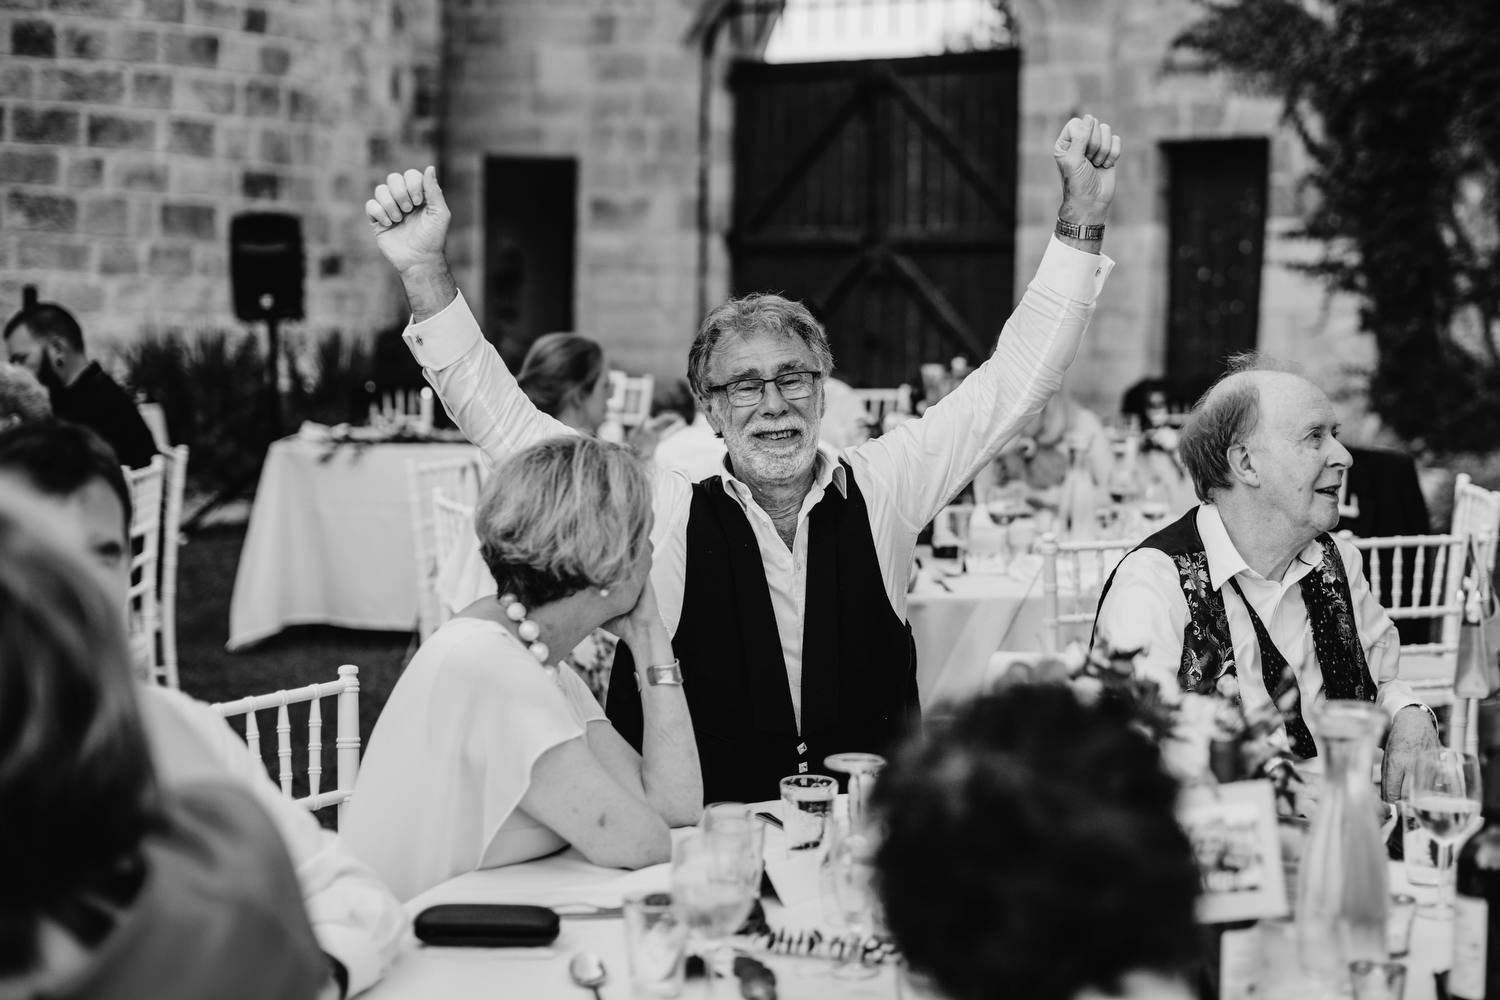 wedding guest puts hand up in air